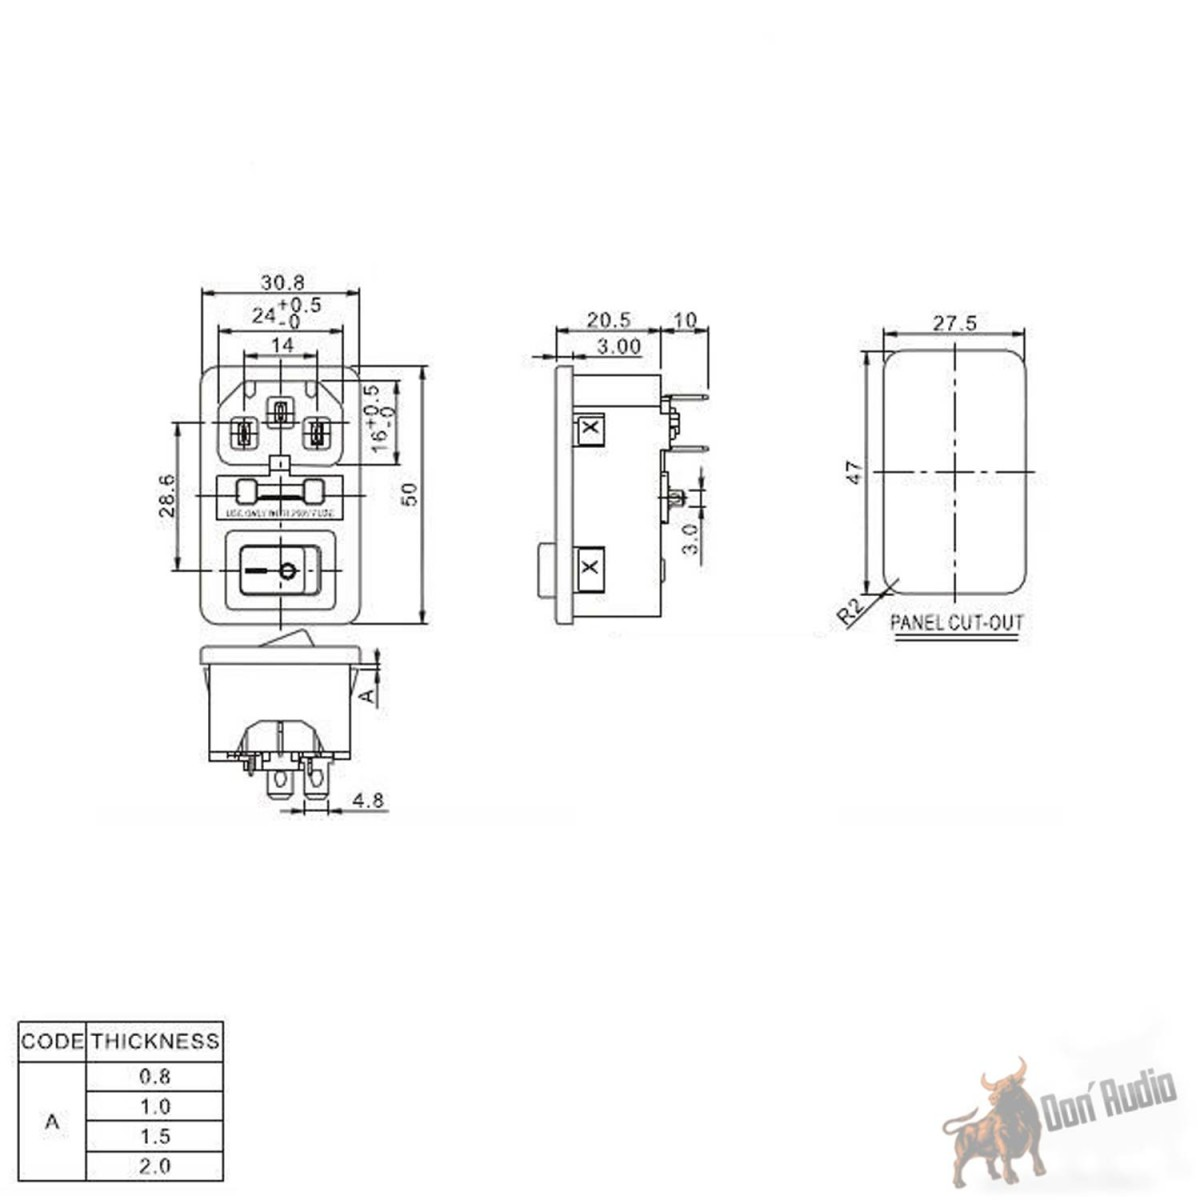 Iec Power Jack Chassis Mount With 10a Fuse Holder Switch Dfs French Electrical Plug Wiring Diagram